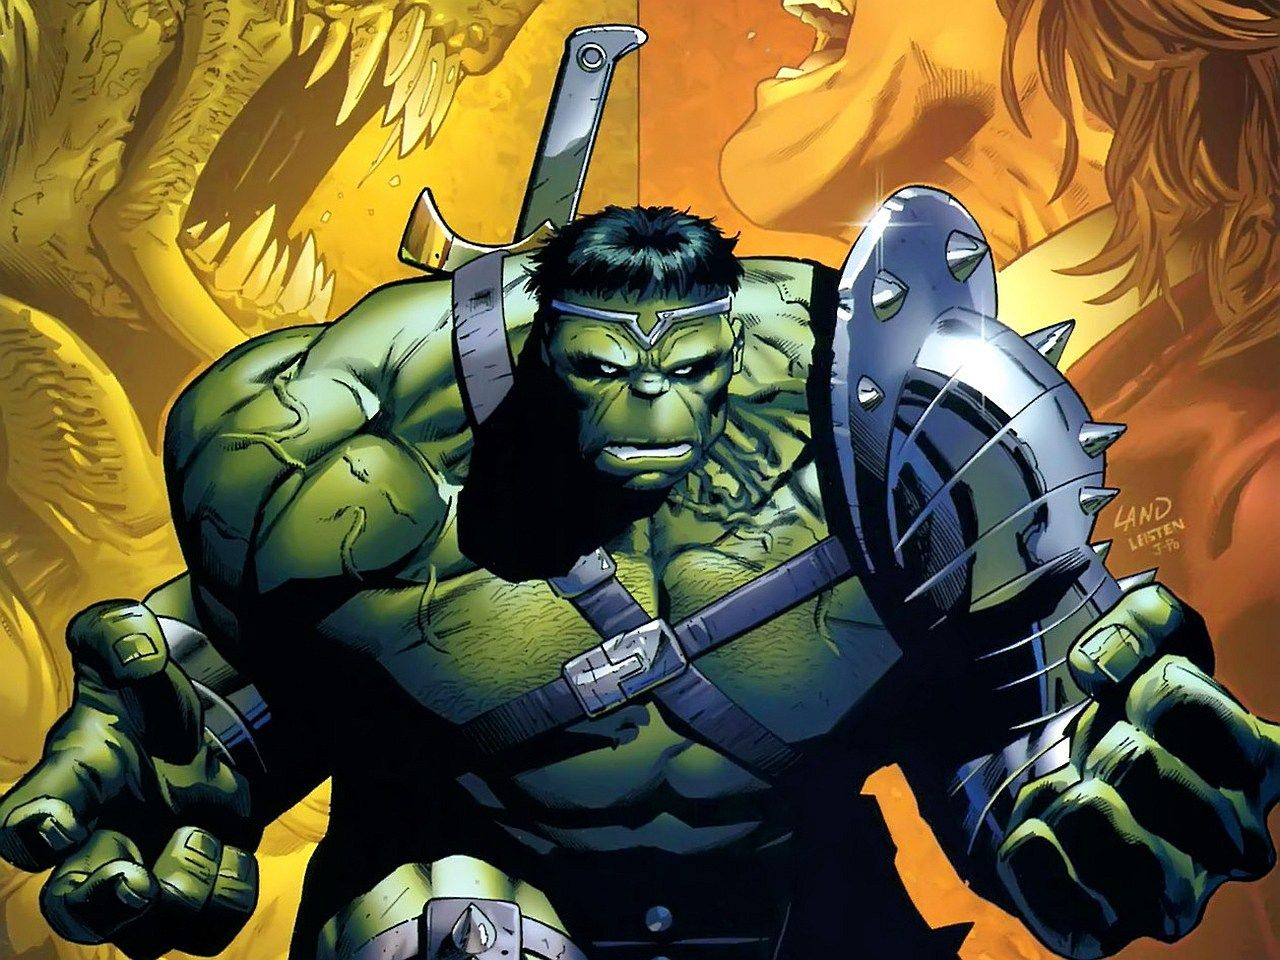 1280x960 Wallpaper of the Day - World War Hulk — Word of The Nerd